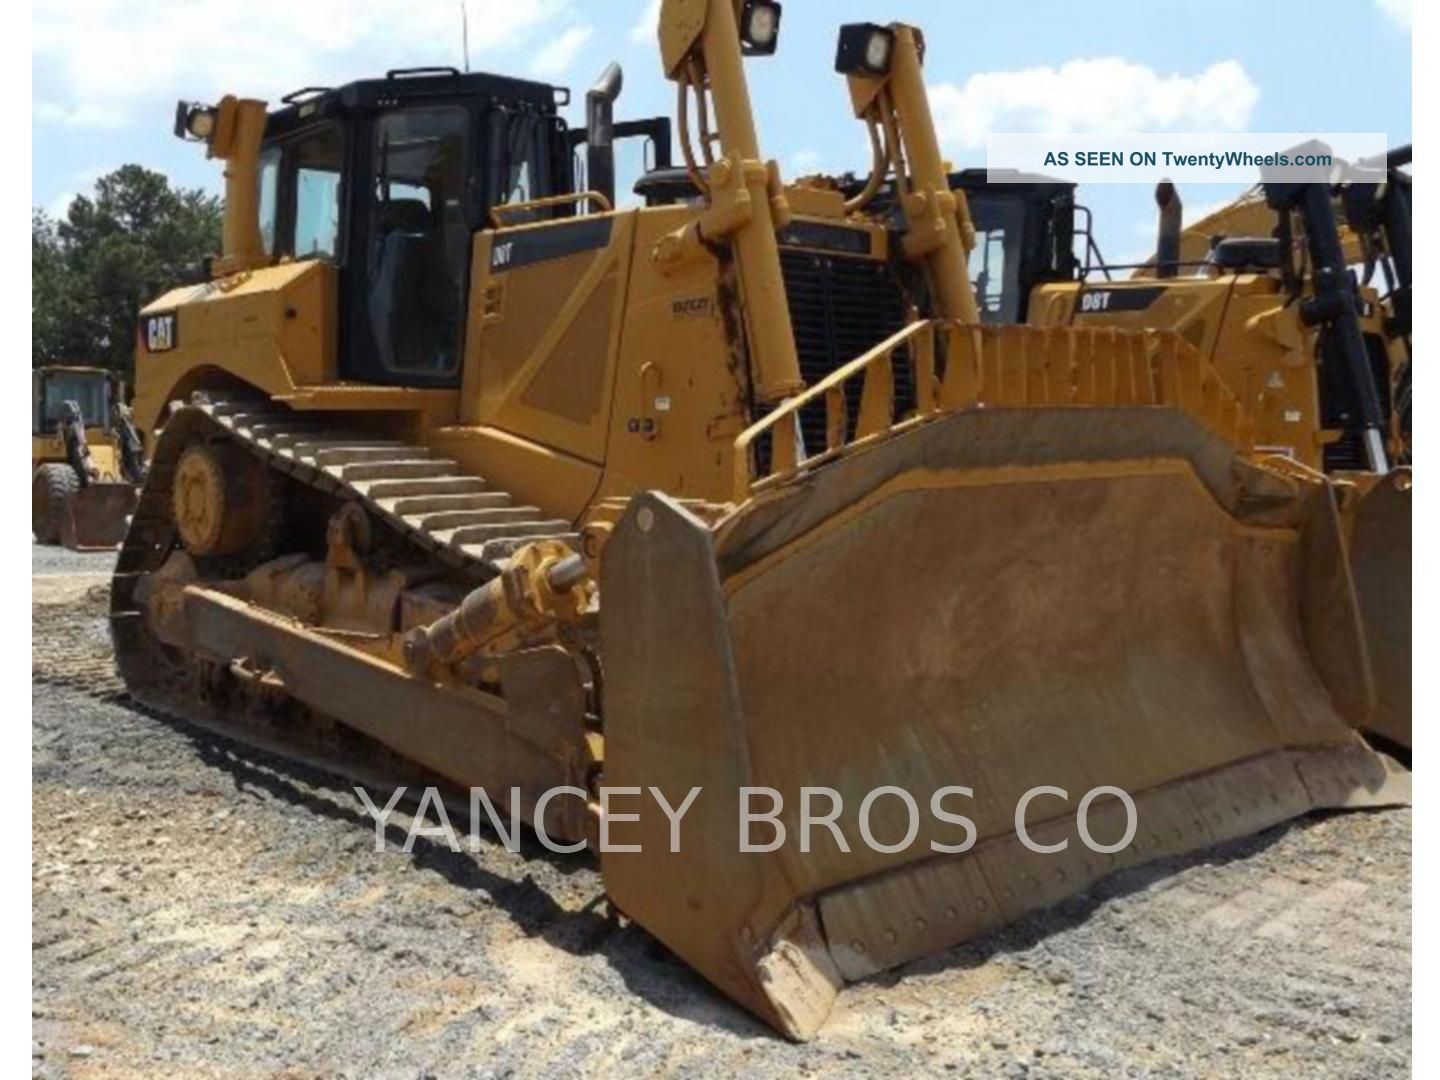 2011 Caterpillar D8t Crawler Tractors Crawler Dozers & Loaders photo